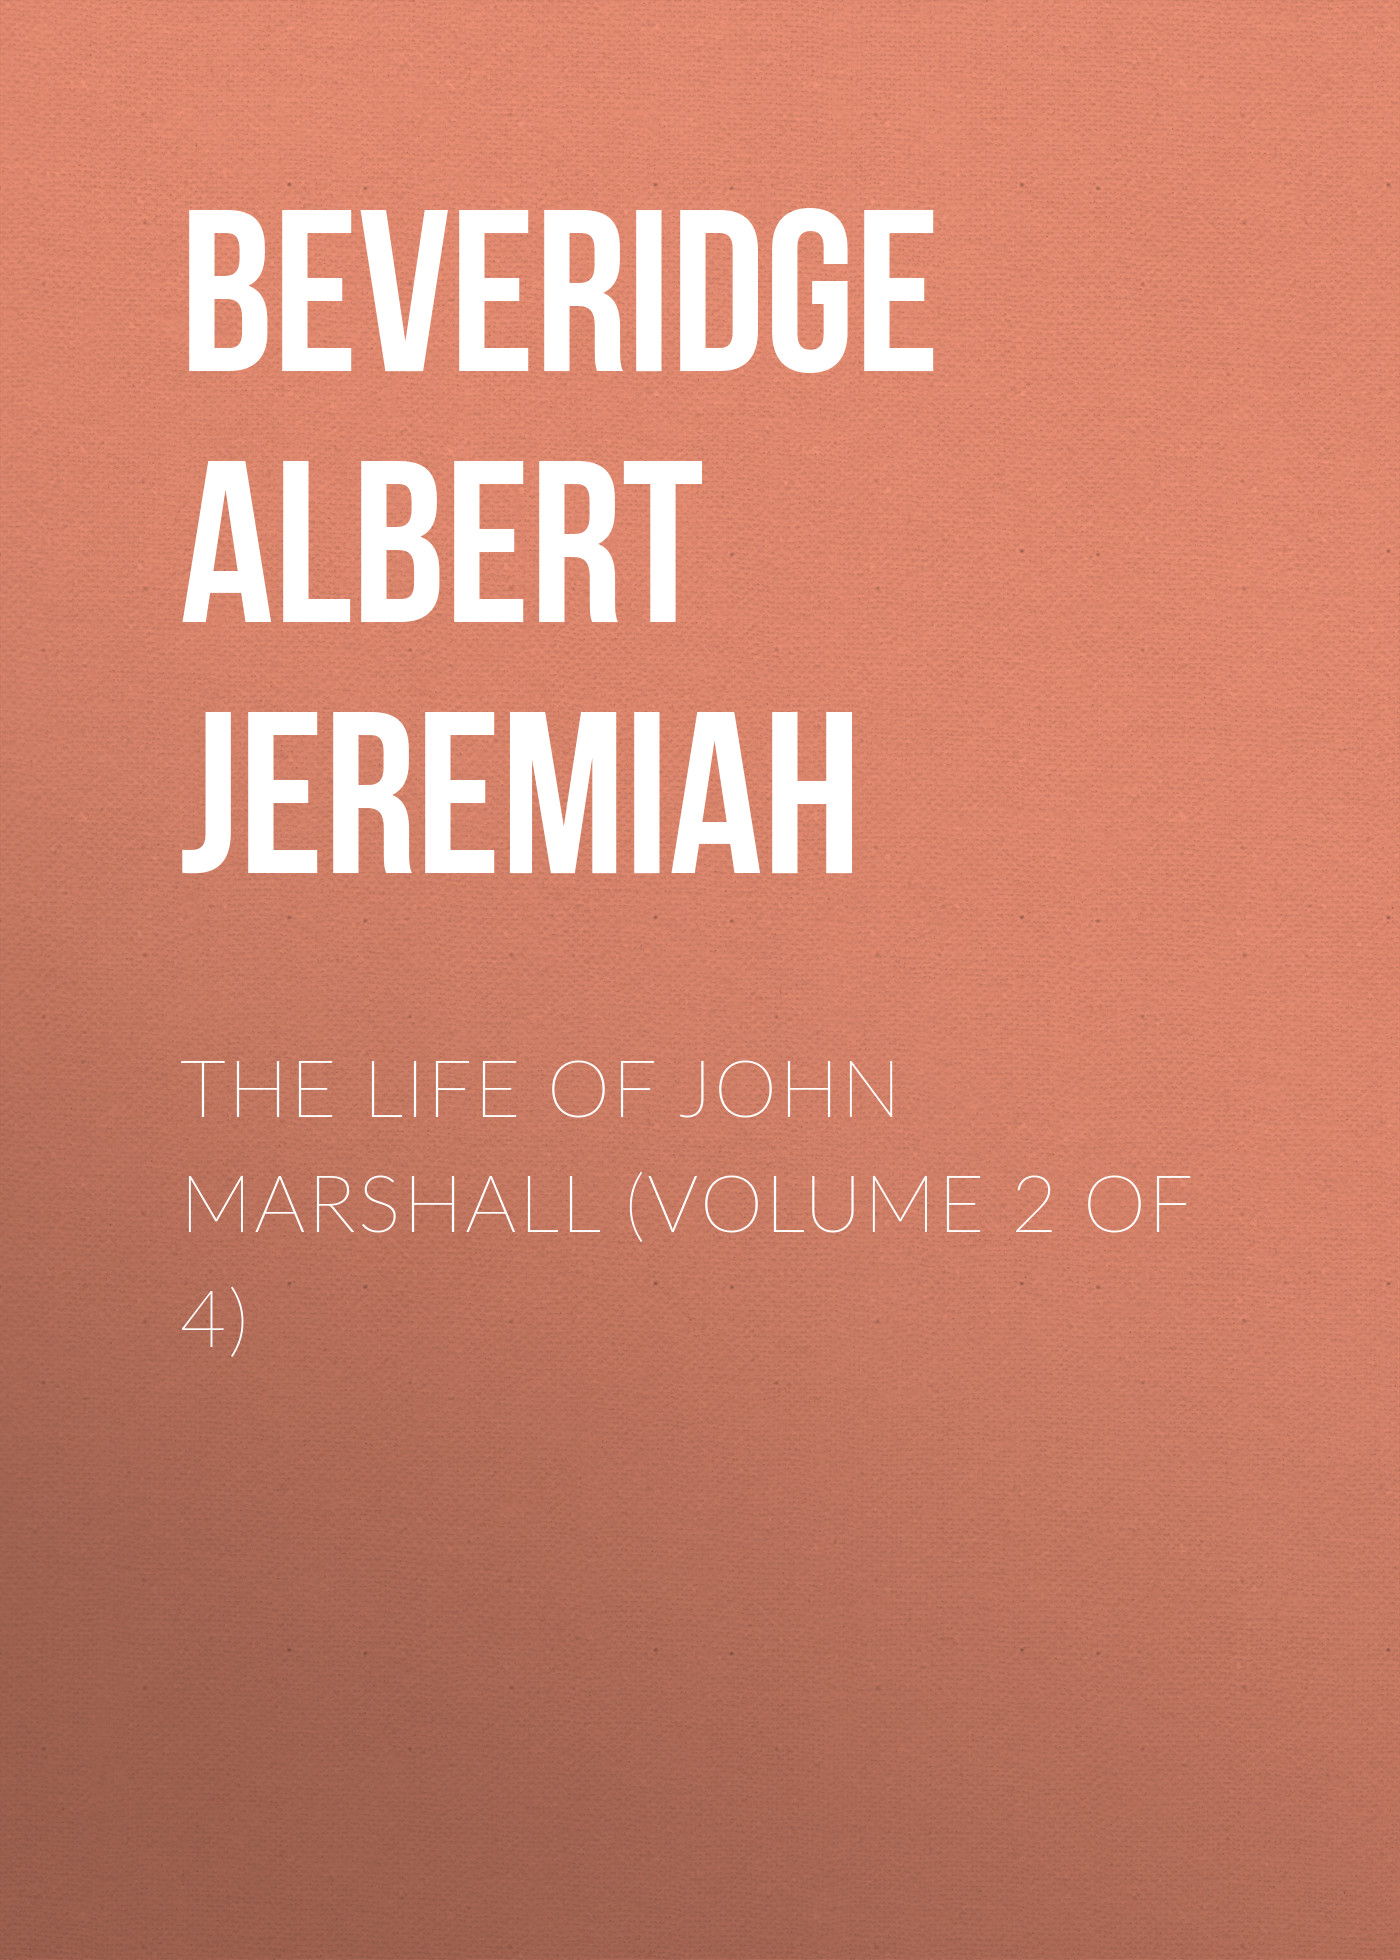 The Life of John Marshall (Volume 2 of 4)